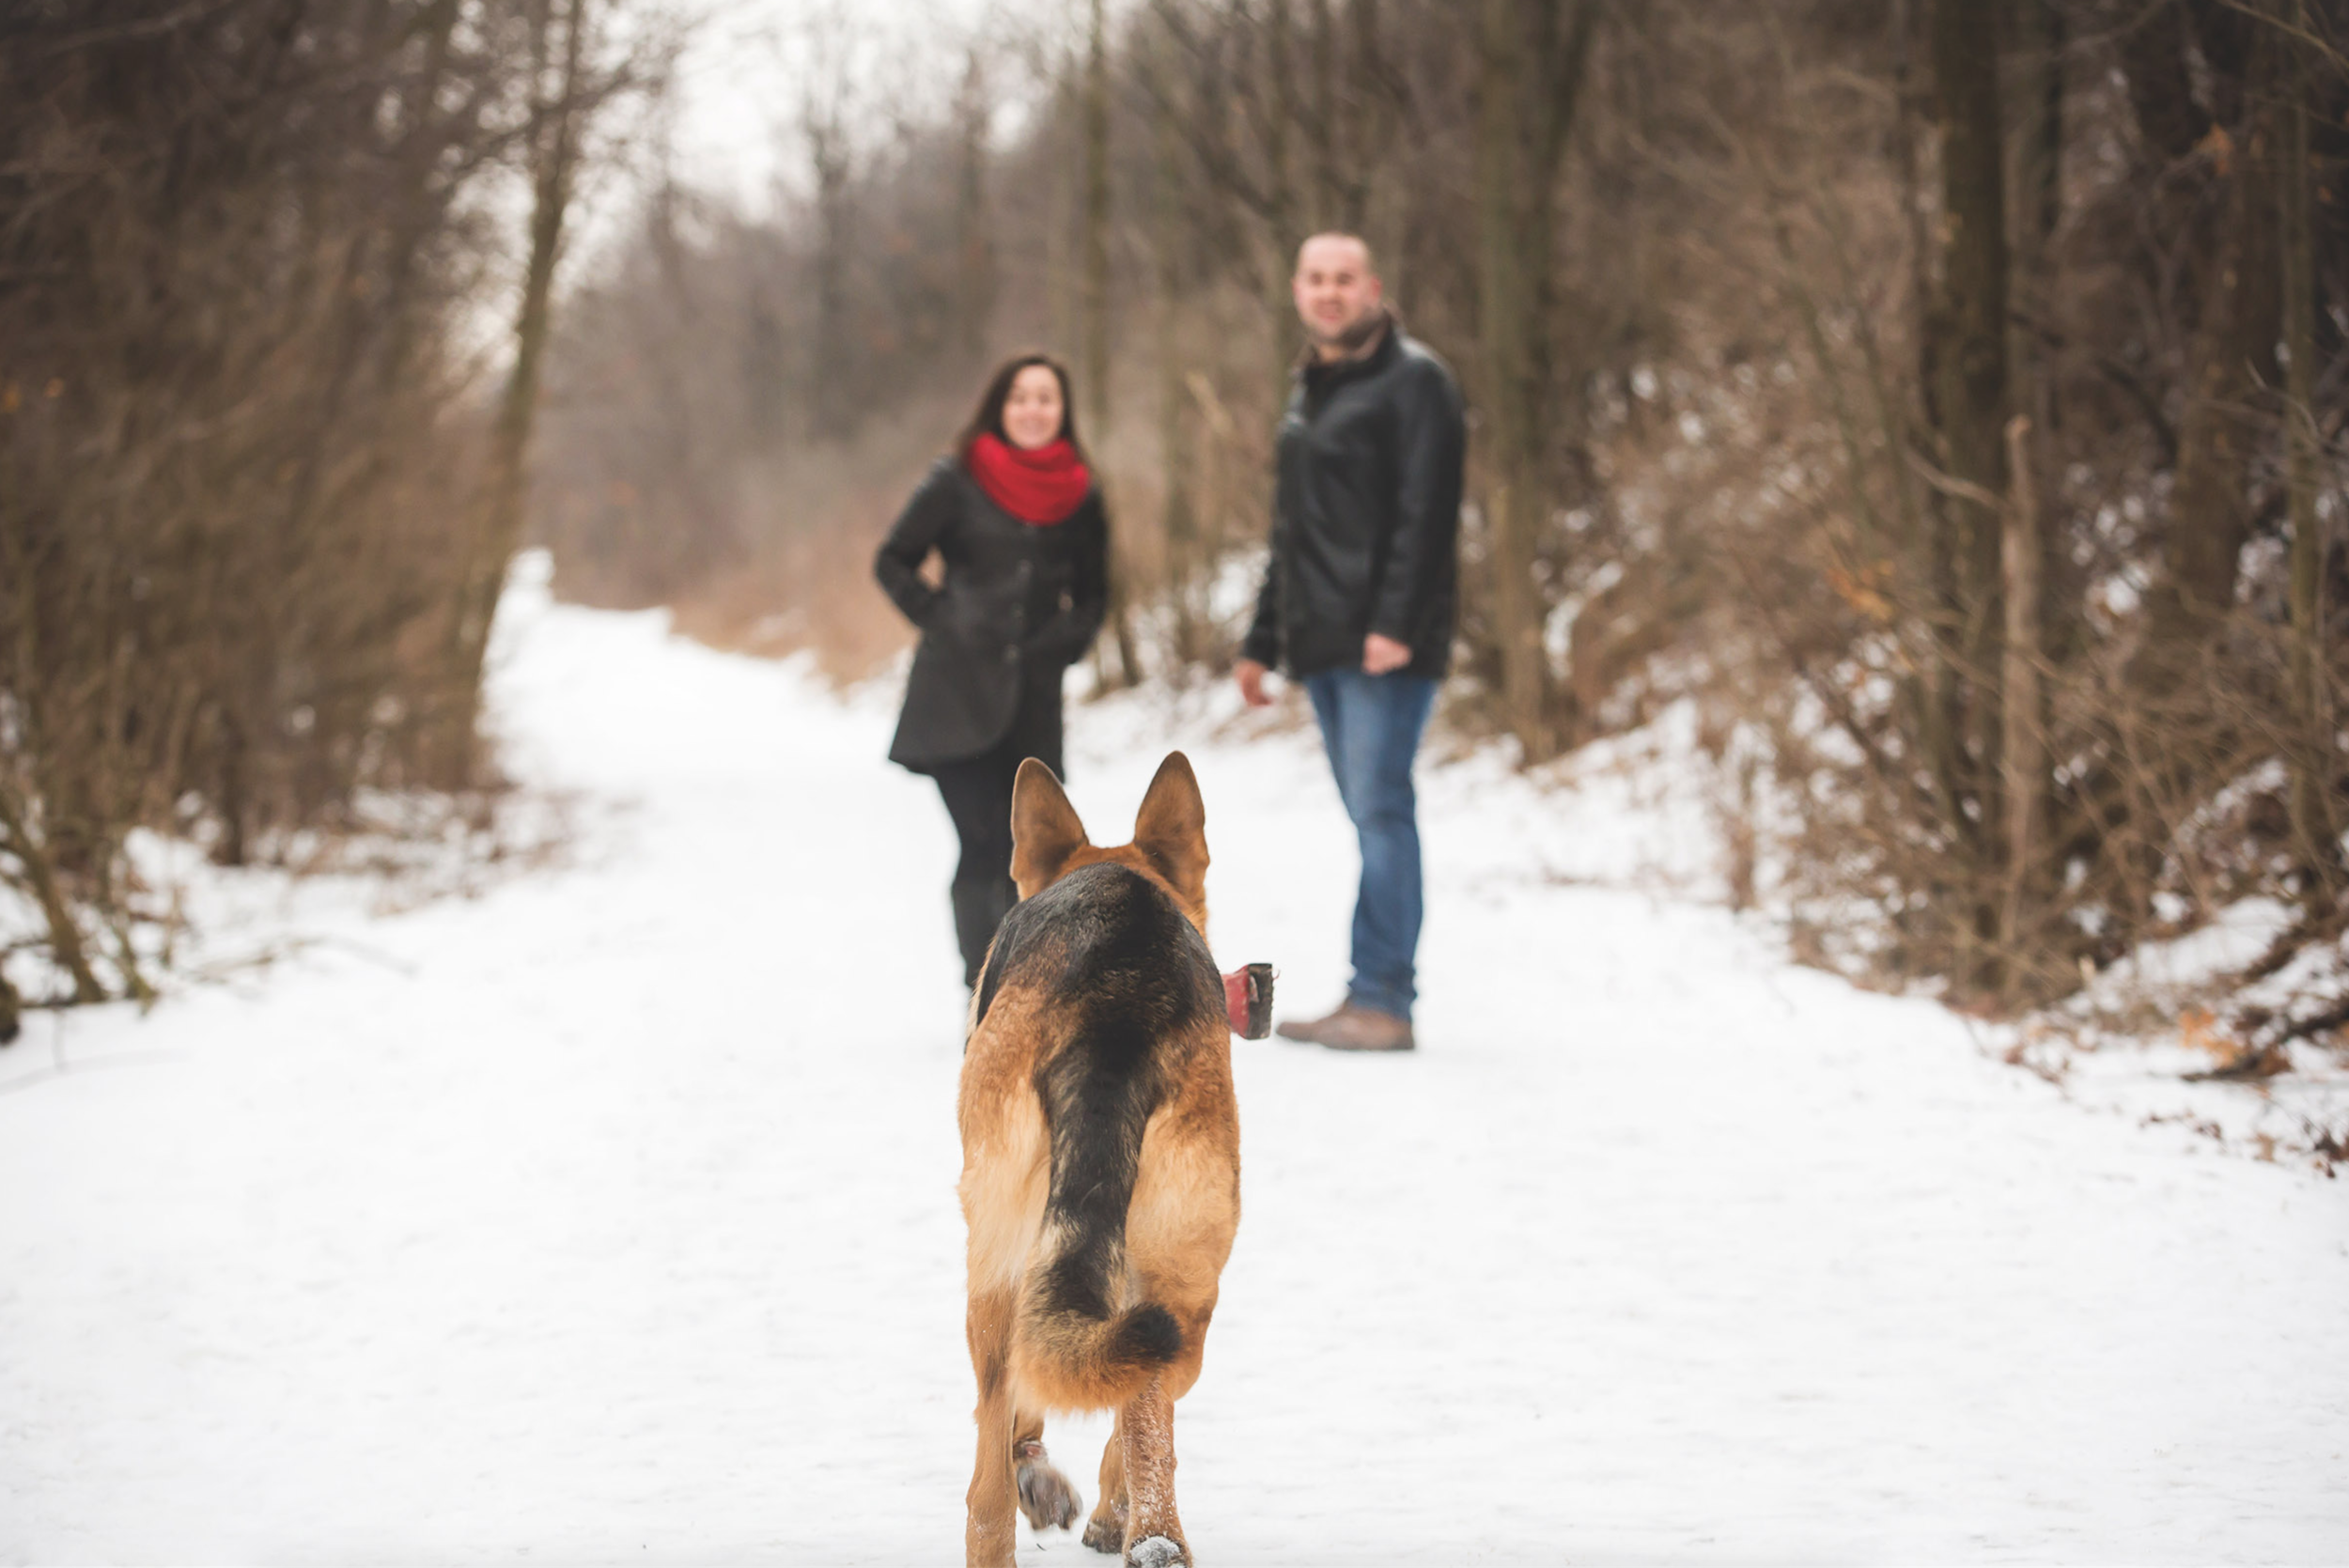 Engagement-Photos-Hamilton-Niagara-Toronto-Burlington-Oakville-Photographer-Engaged-Ring-Photography-Dog-Winter-Moments-by-Lauren-Image-4.png